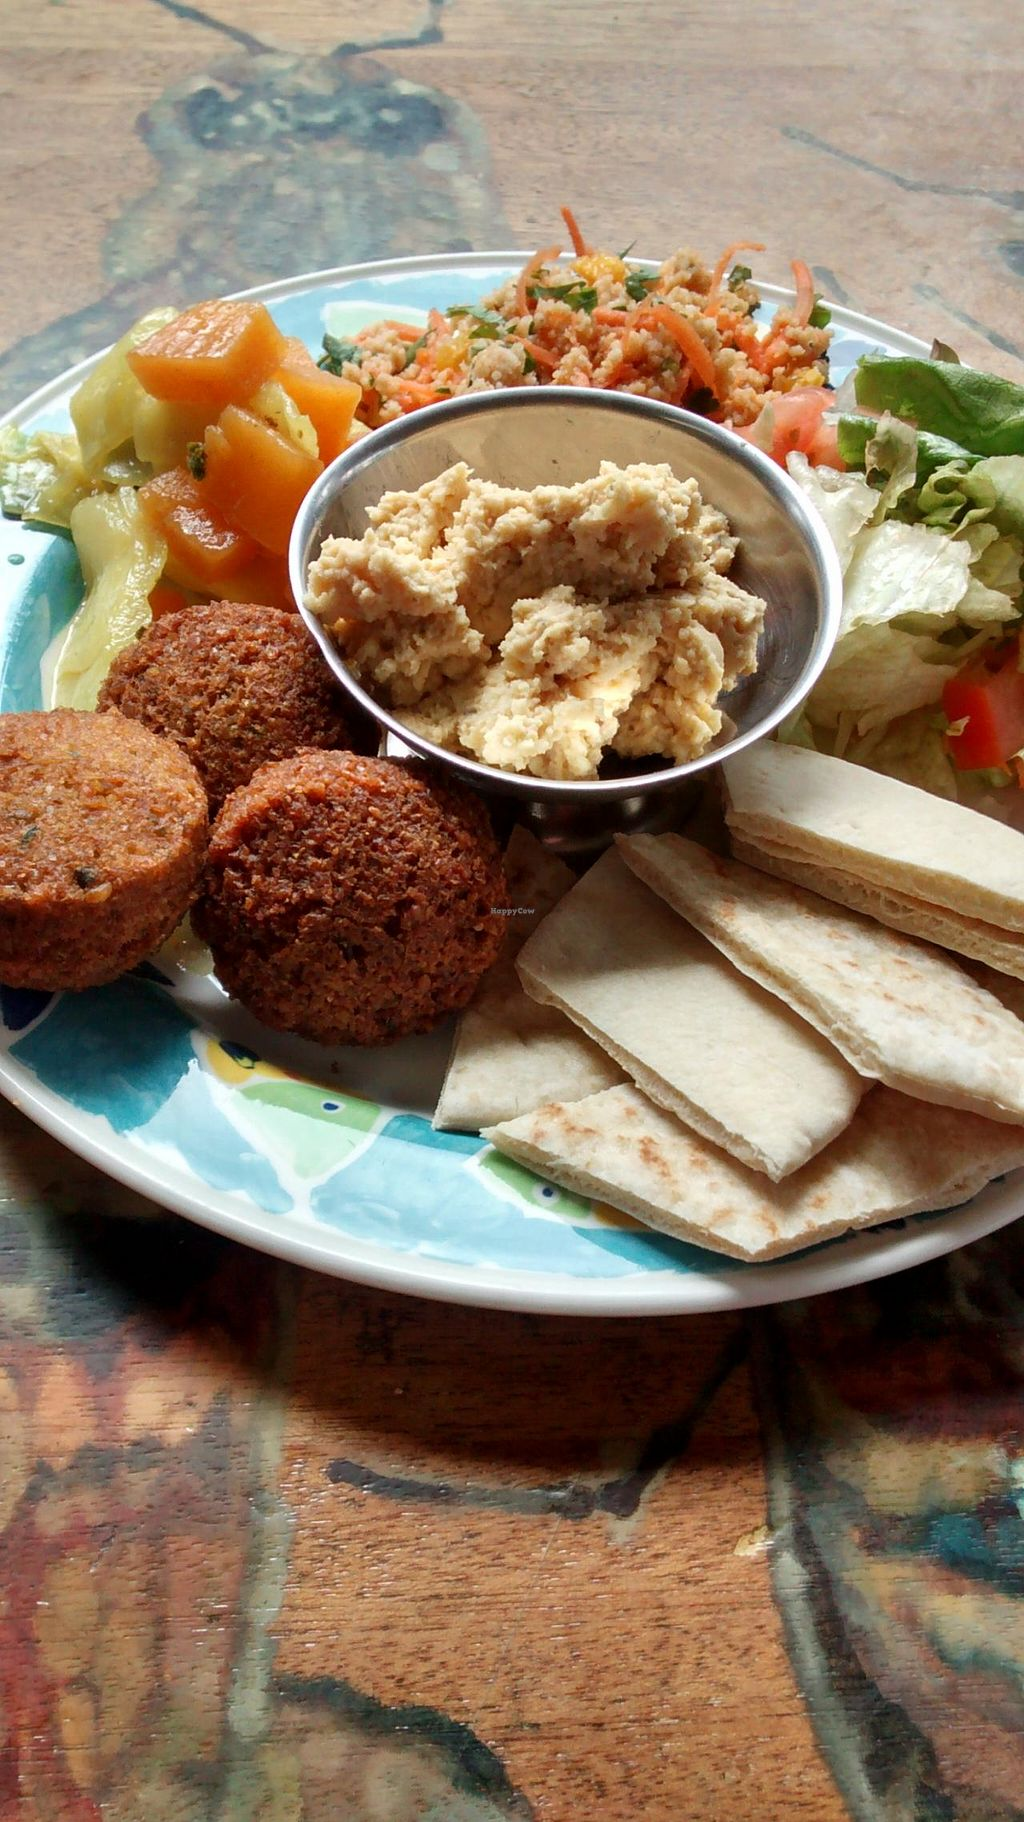 """Photo of The Forest Cafe  by <a href=""""/members/profile/craigmc"""">craigmc</a> <br/>Falafel meal. Plenty of veg <br/> April 13, 2014  - <a href='/contact/abuse/image/34384/67565'>Report</a>"""